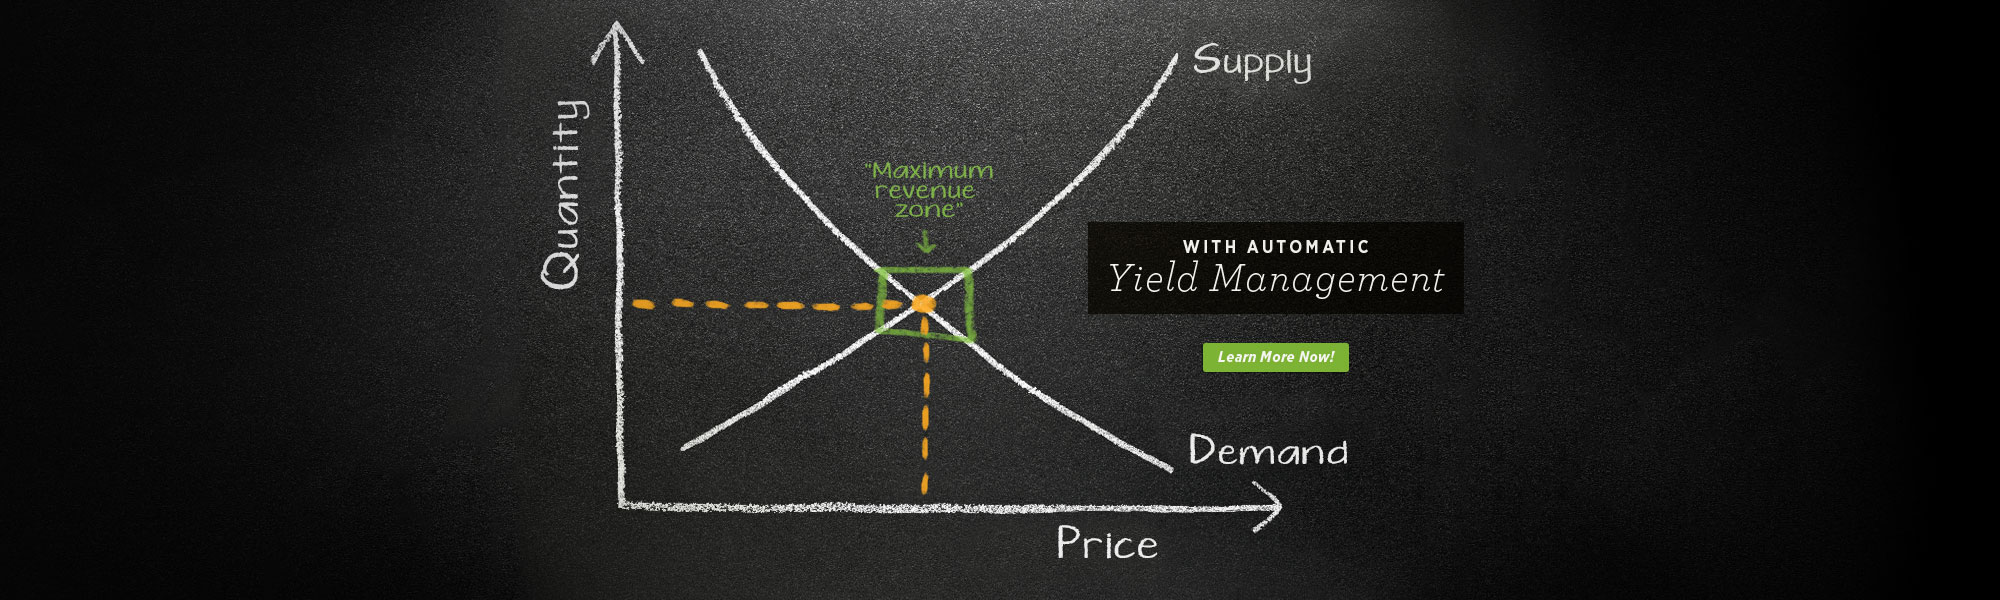 Yield Management:Understanding the laws of Supply and Demand